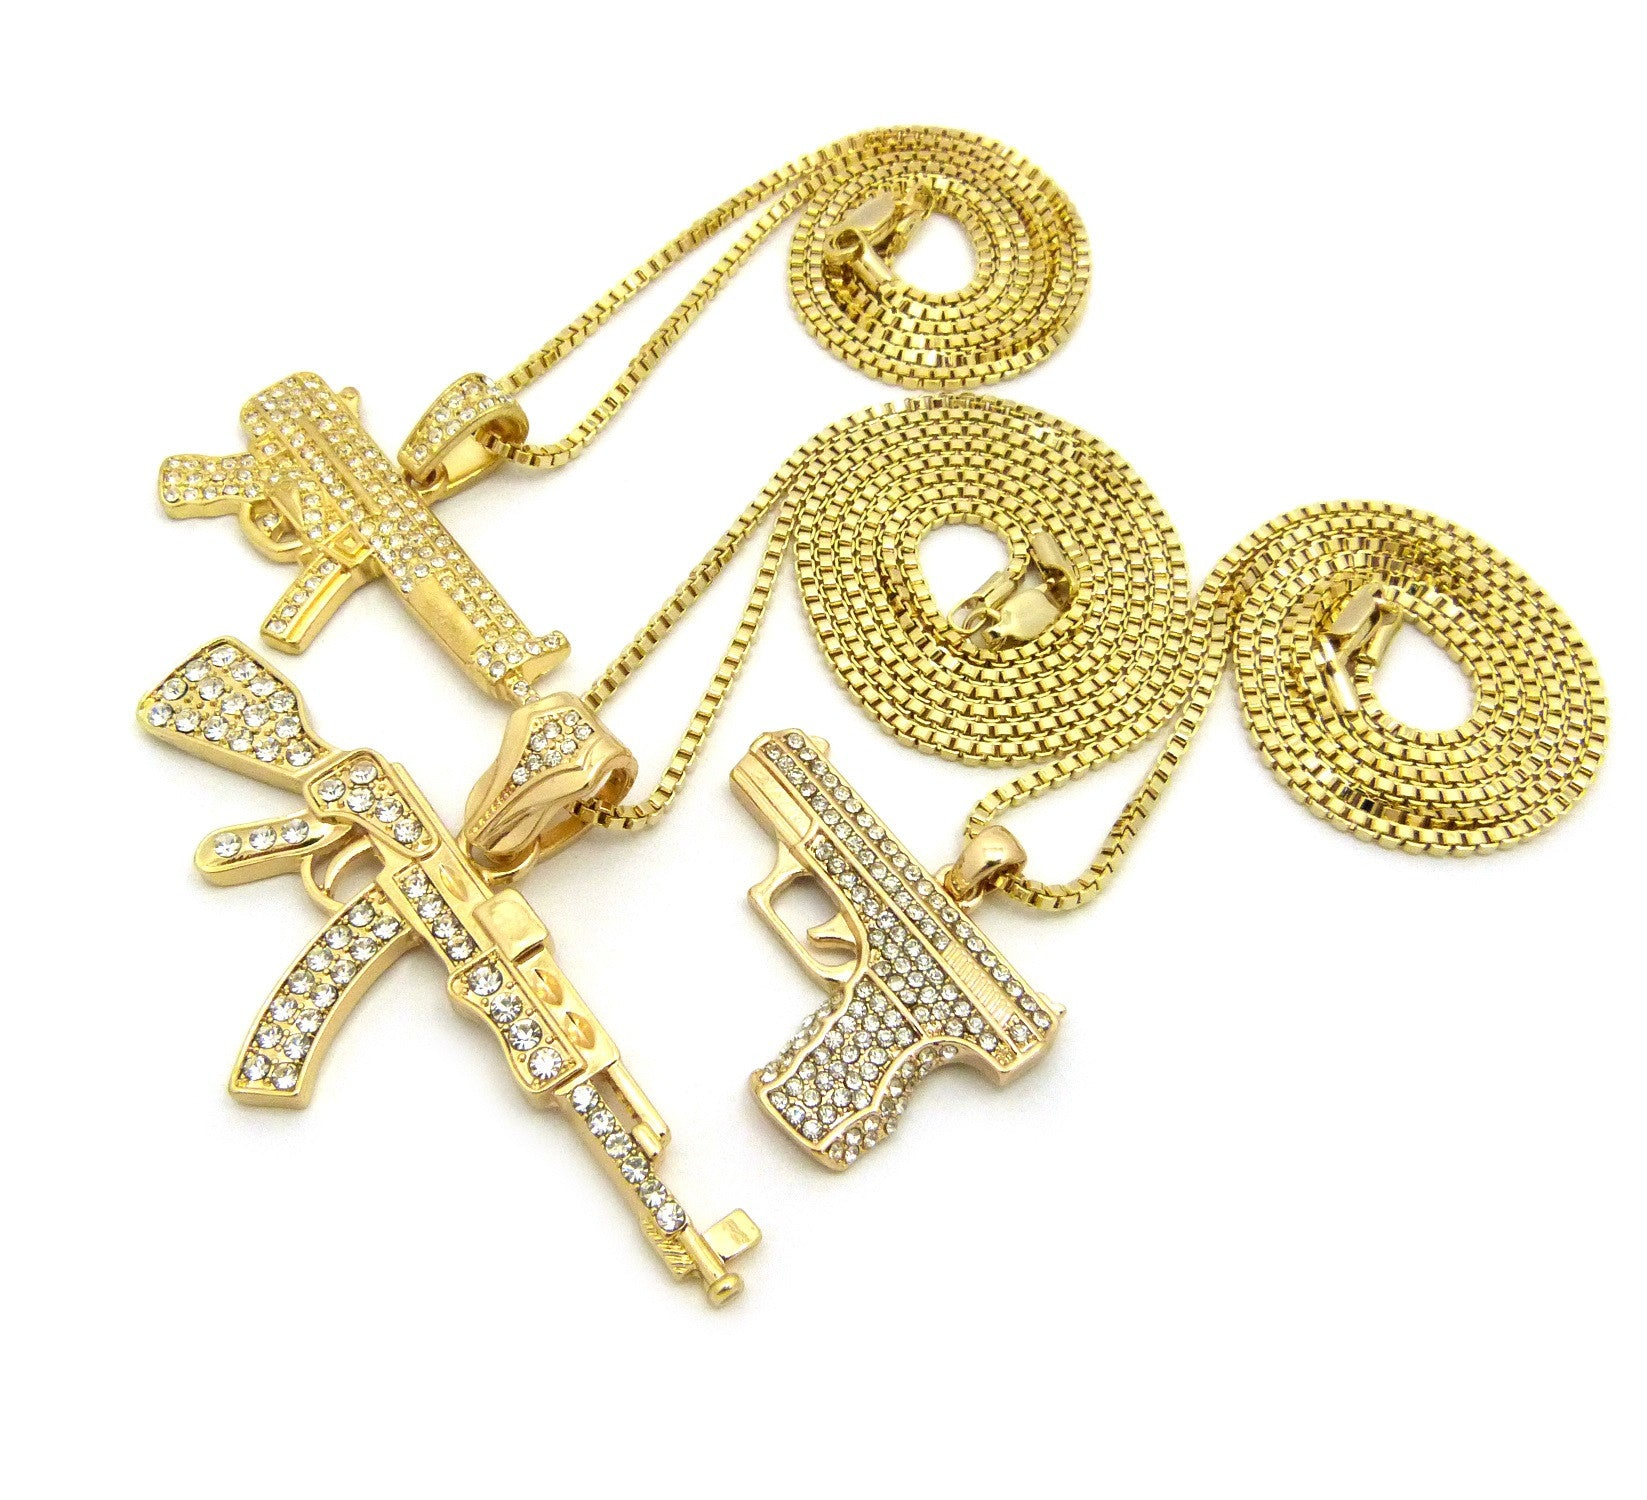 14k Gold Plated 3 Chain Gun Combo On 24 30 36 Inch Box Chain